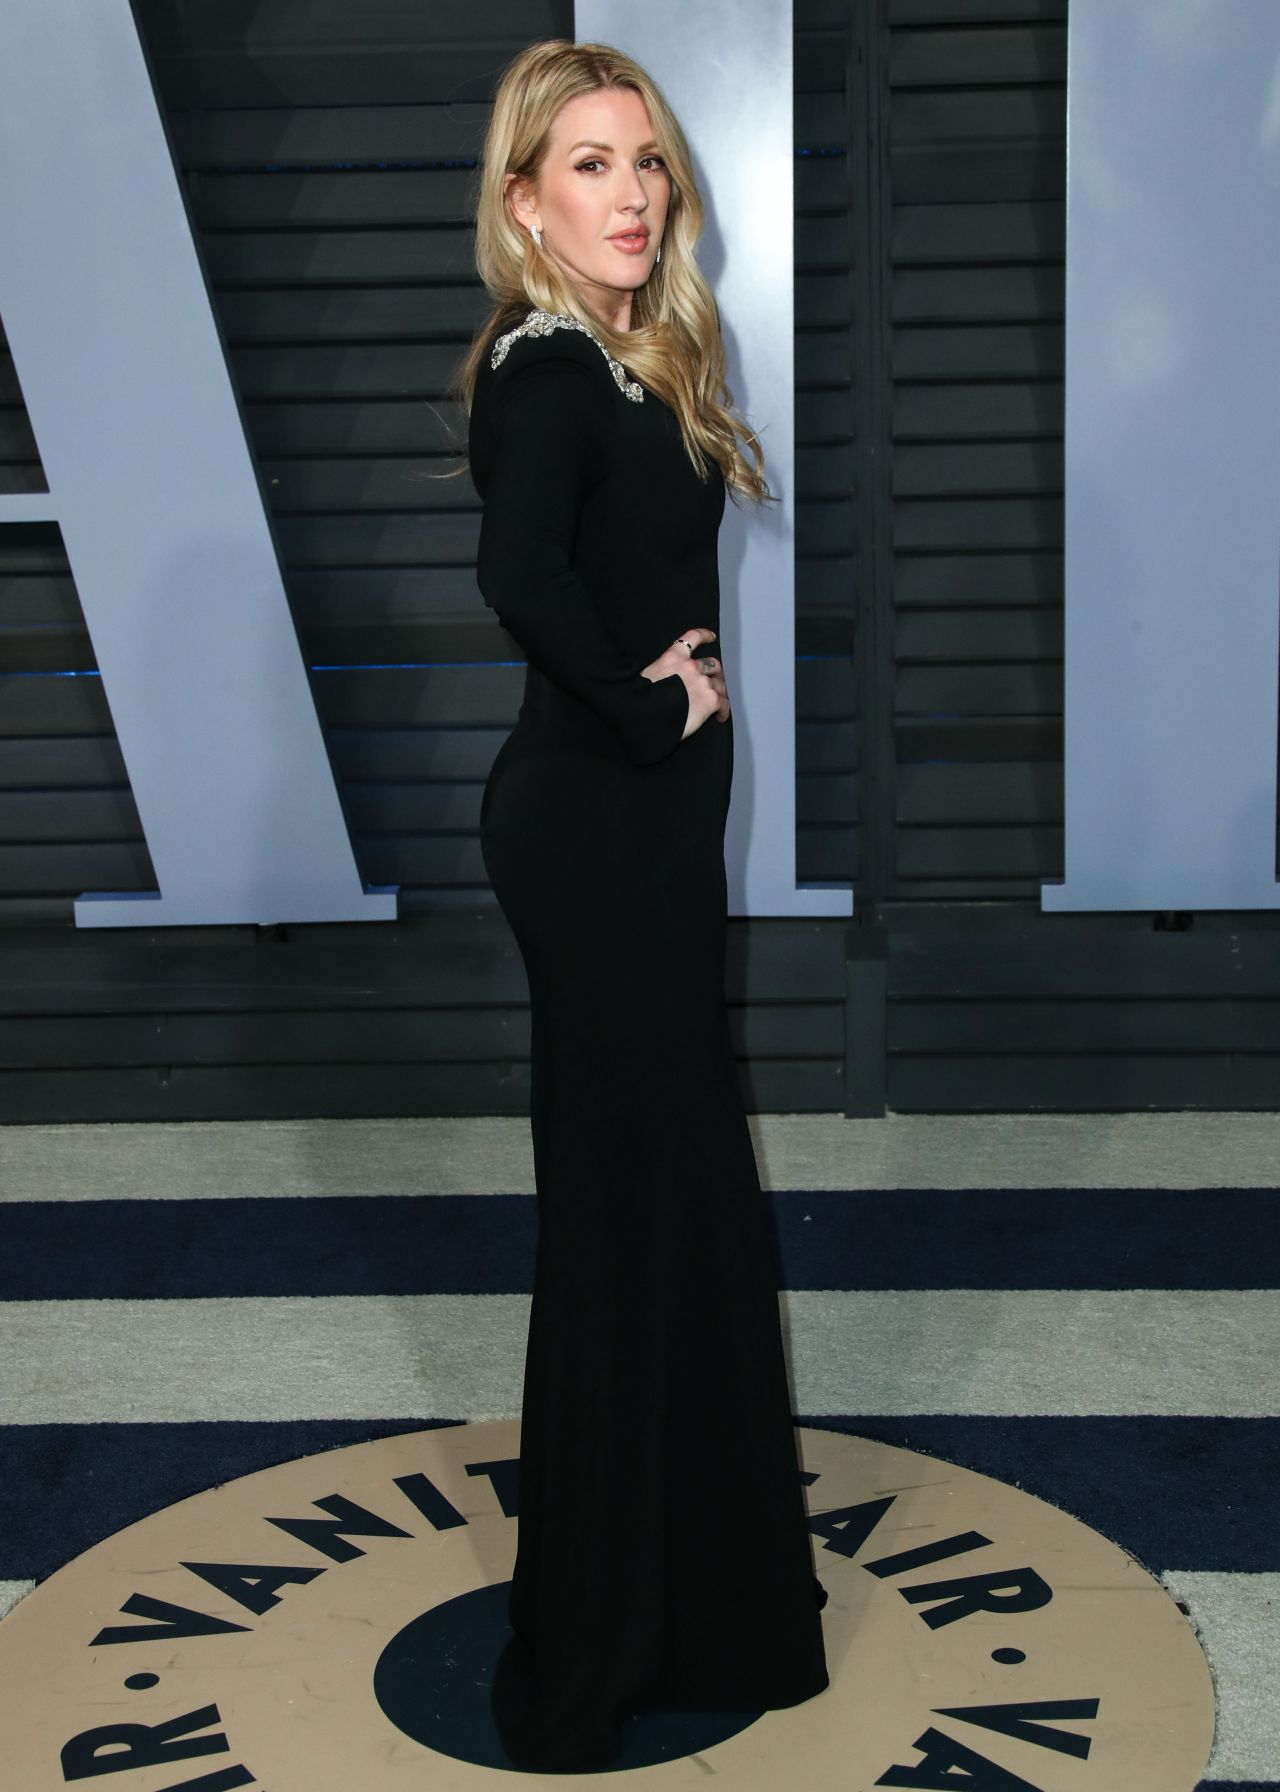 http://celebmafia.com/wp-content/uploads/2018/03/ellie-goulding-2018-vanity-fair-oscar-party-in-beverly-hills-3.jpg